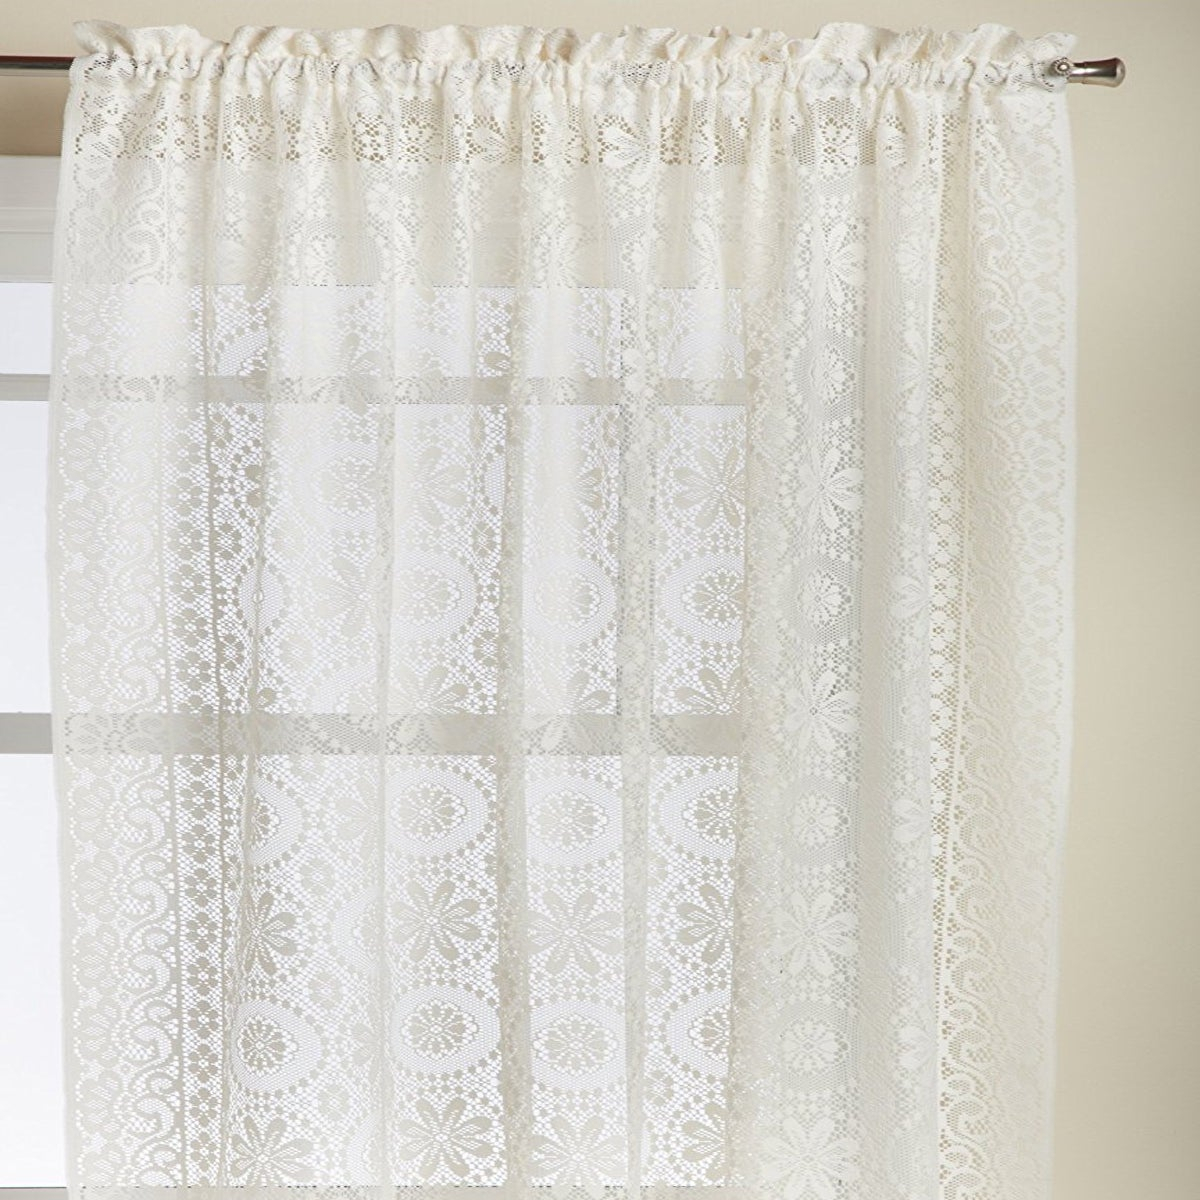 Luxurious Old World Style Lace Window Curtain Panel Pertaining To Luxurious Old World Style Lace Window Curtain Panels (View 3 of 20)